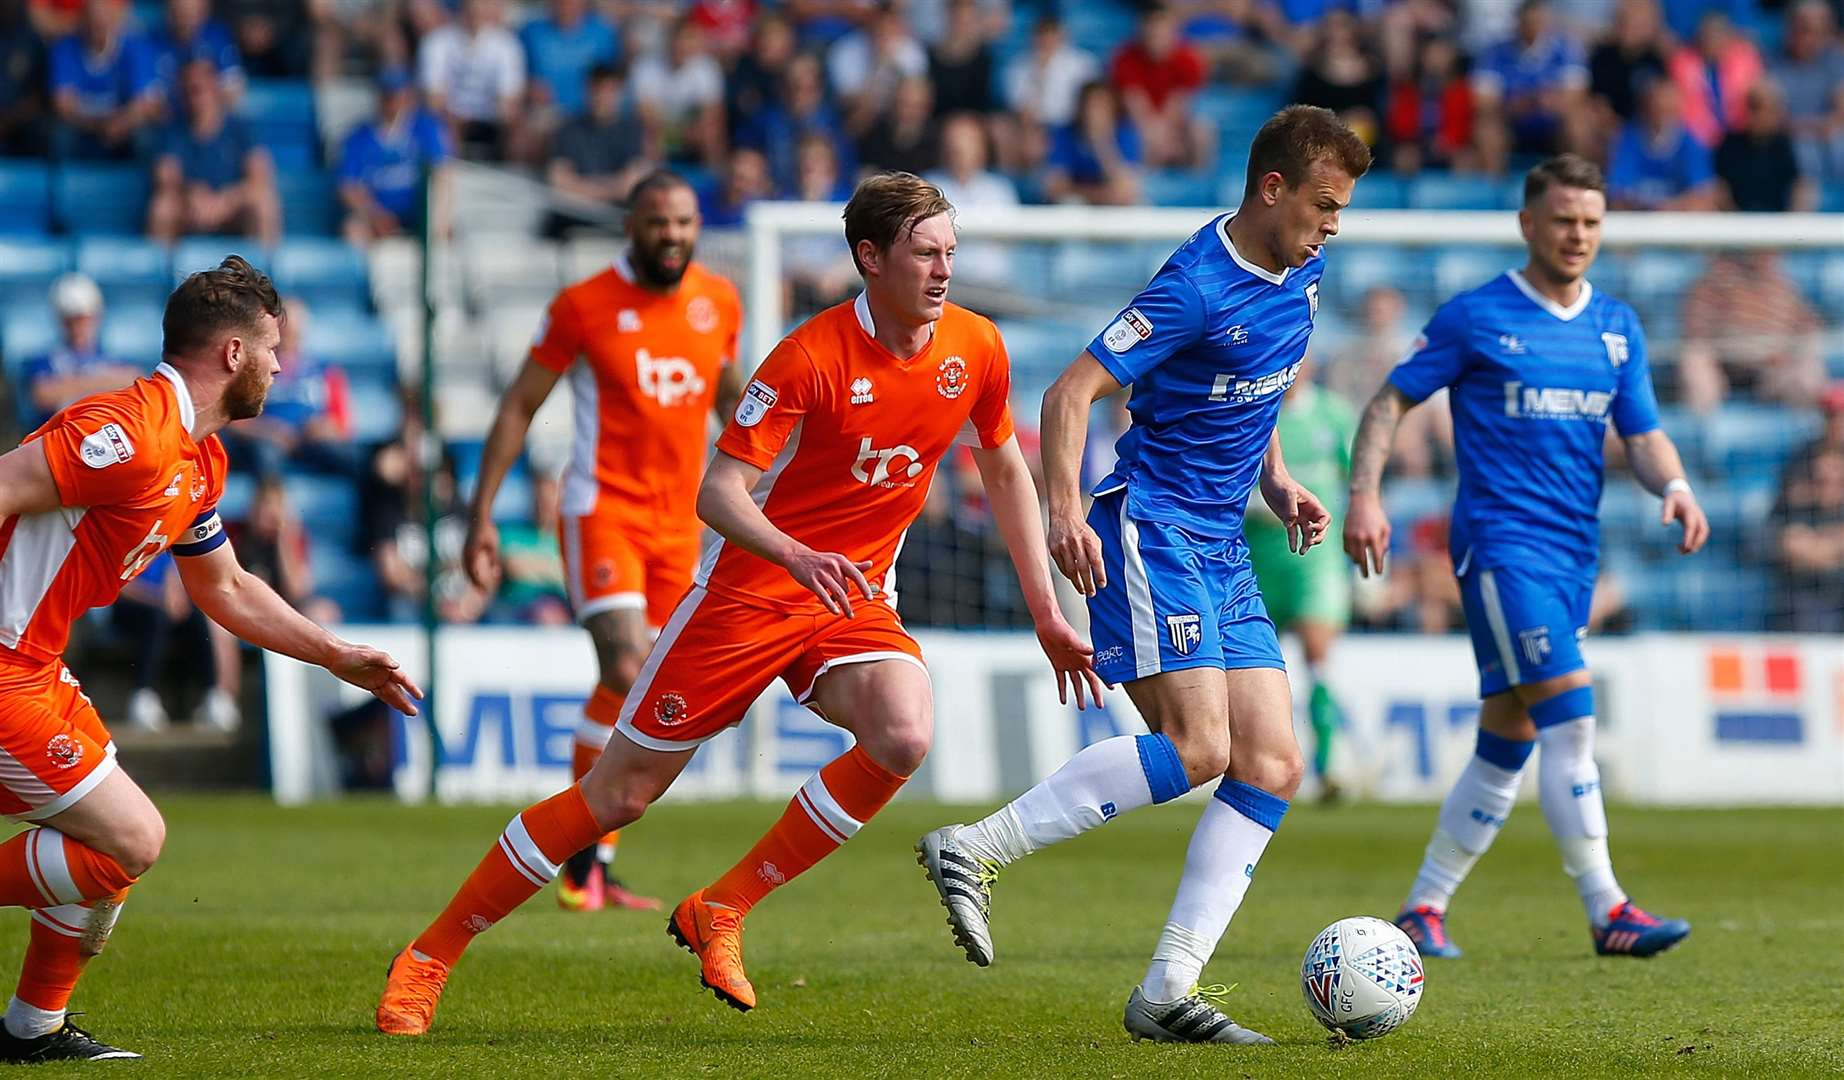 Jake Hessenthaler drives Gills on Picture: Andy Jones